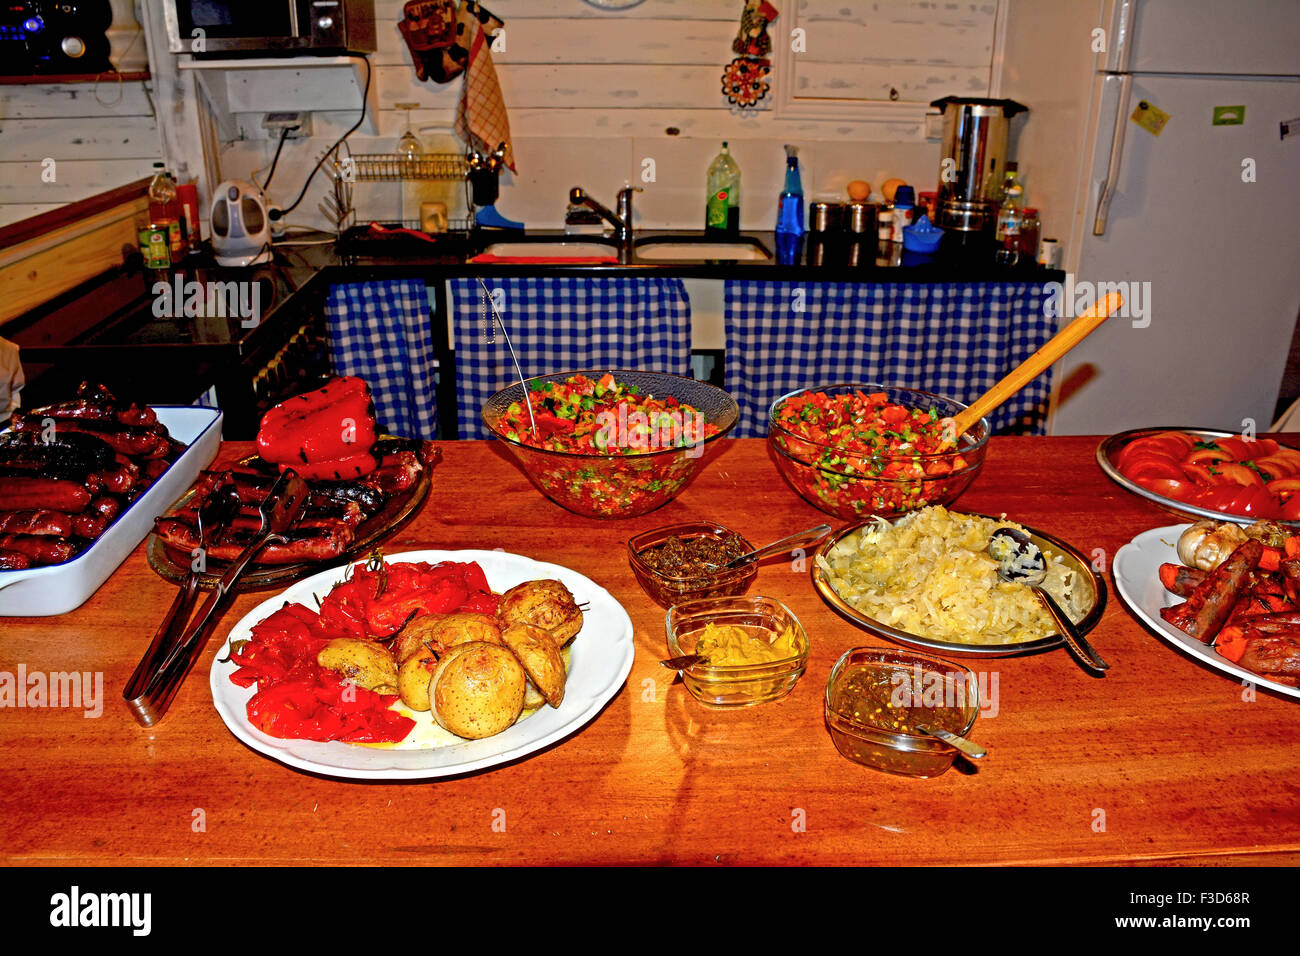 Home cooking Kitchen, Food on the table - Stock Image